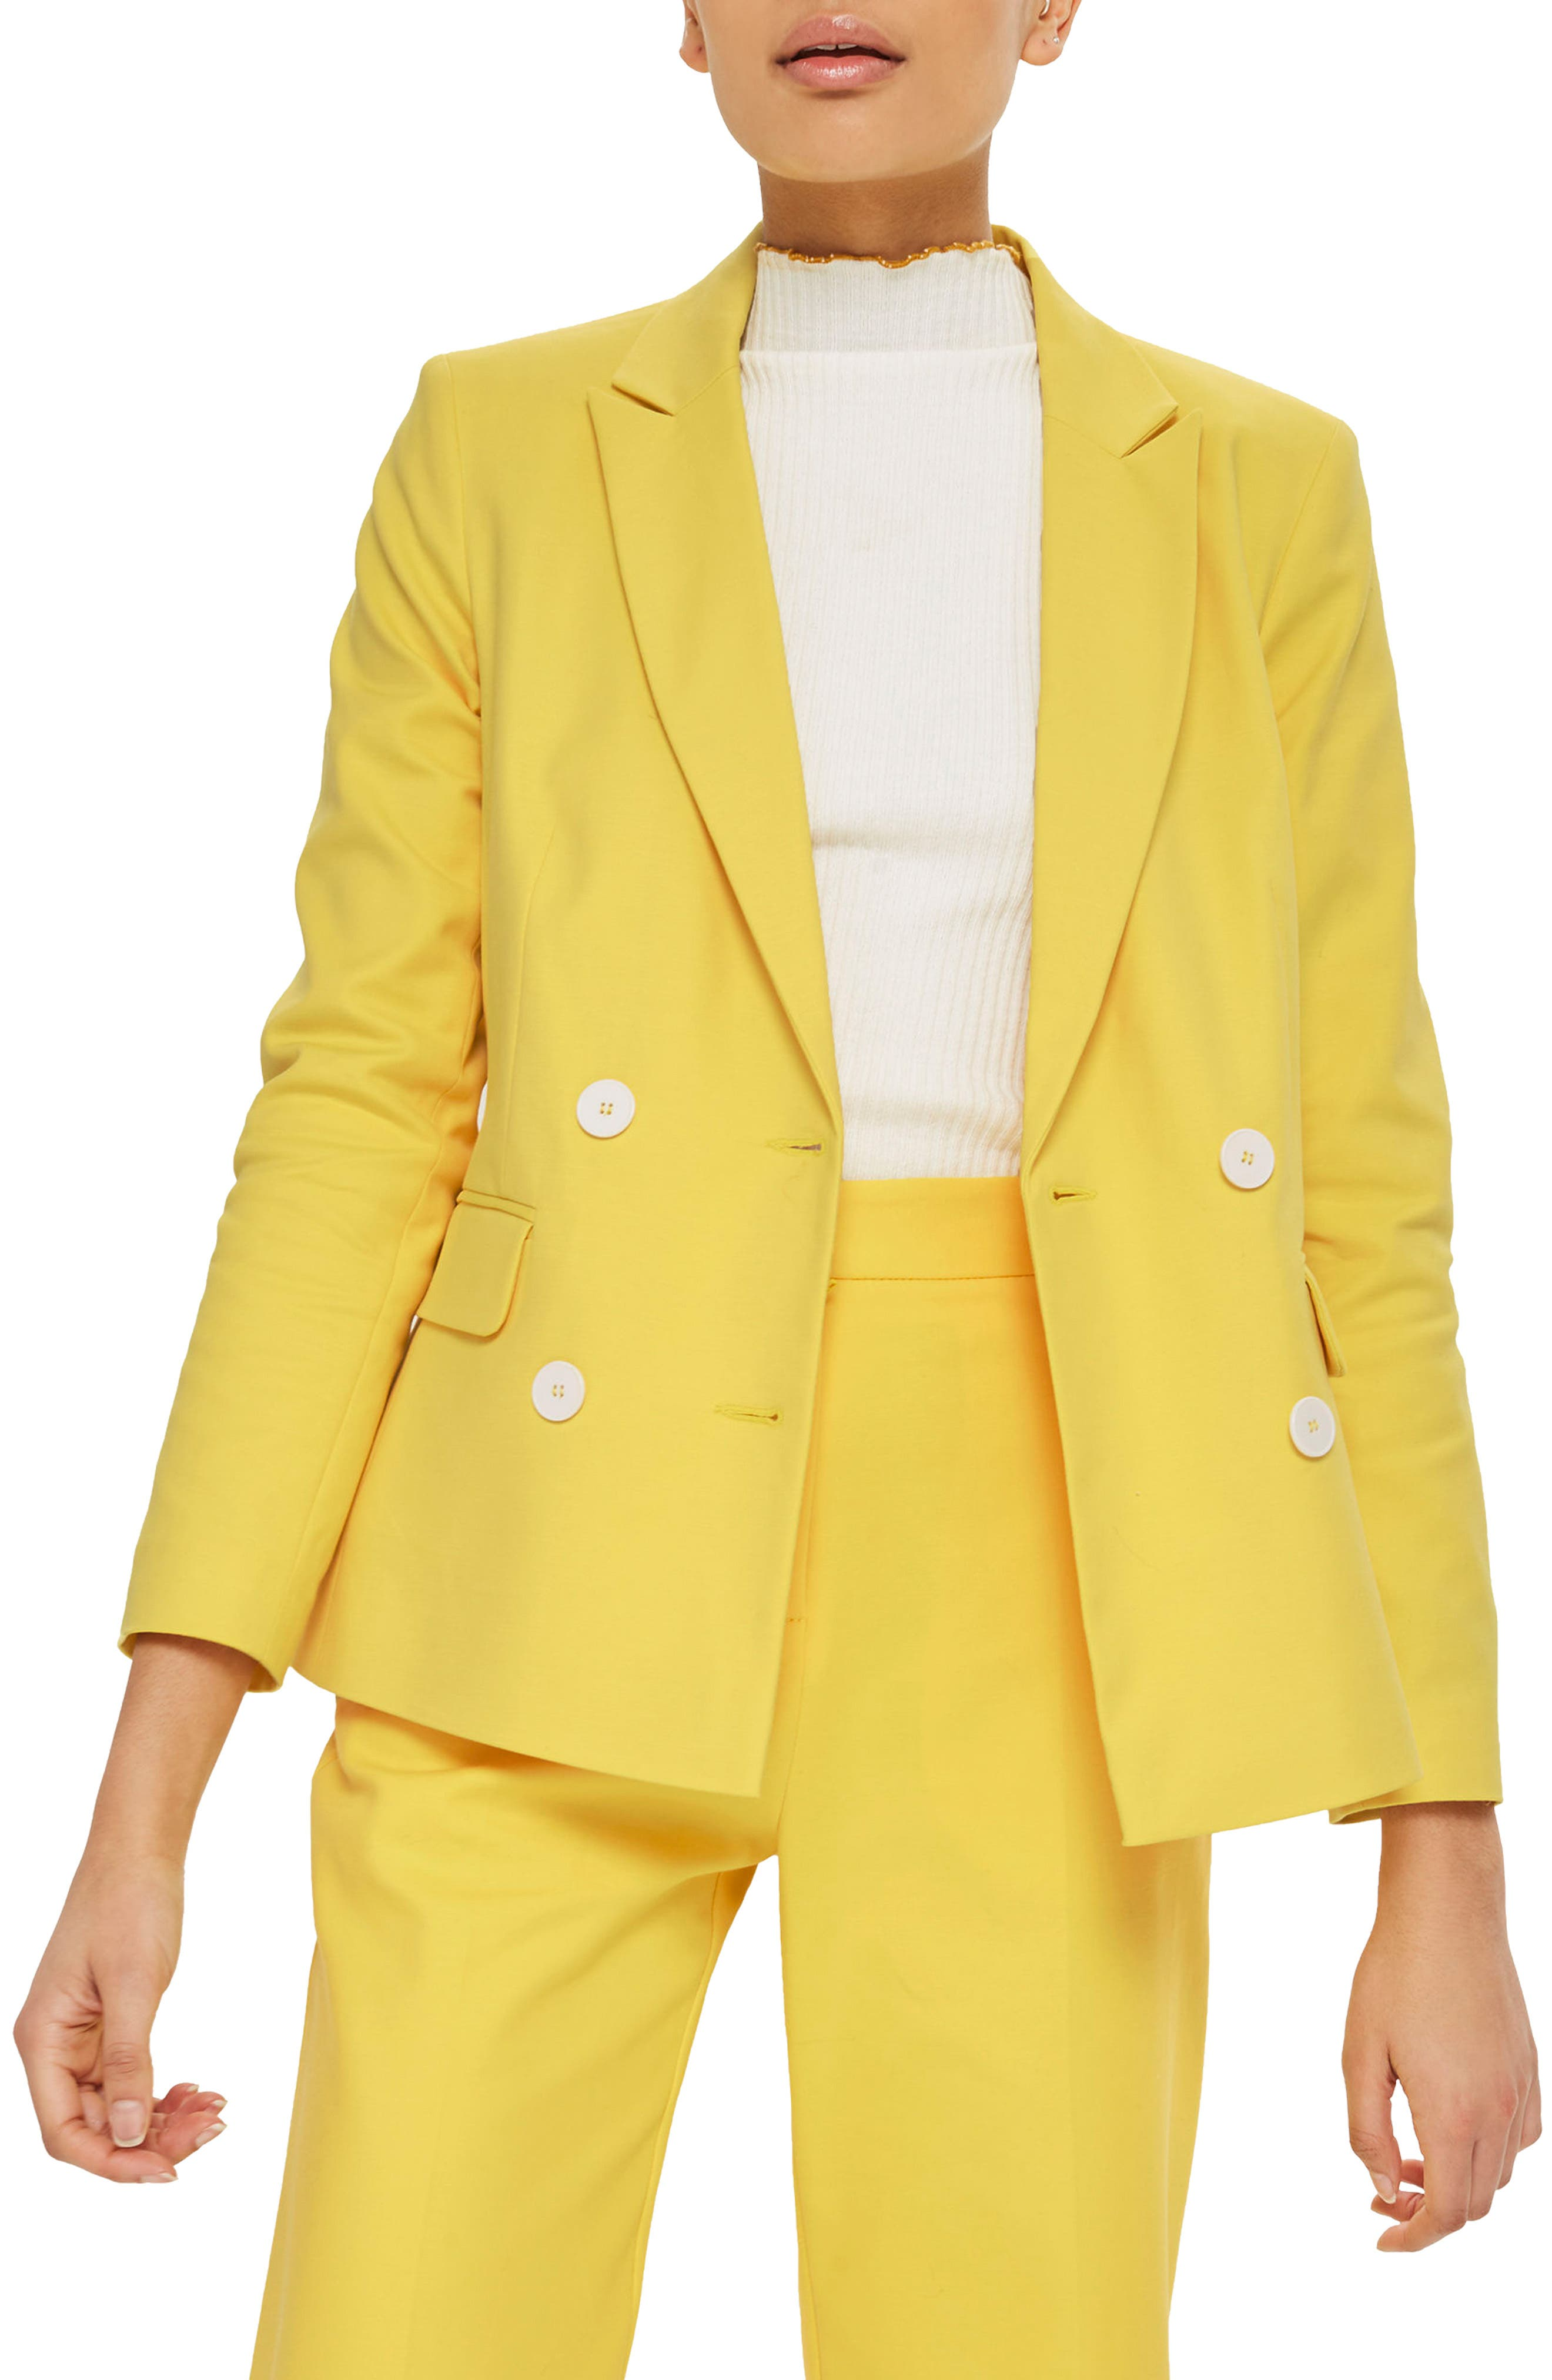 Milly Double Breasted Suit Jacket,                             Main thumbnail 1, color,                             Yellow